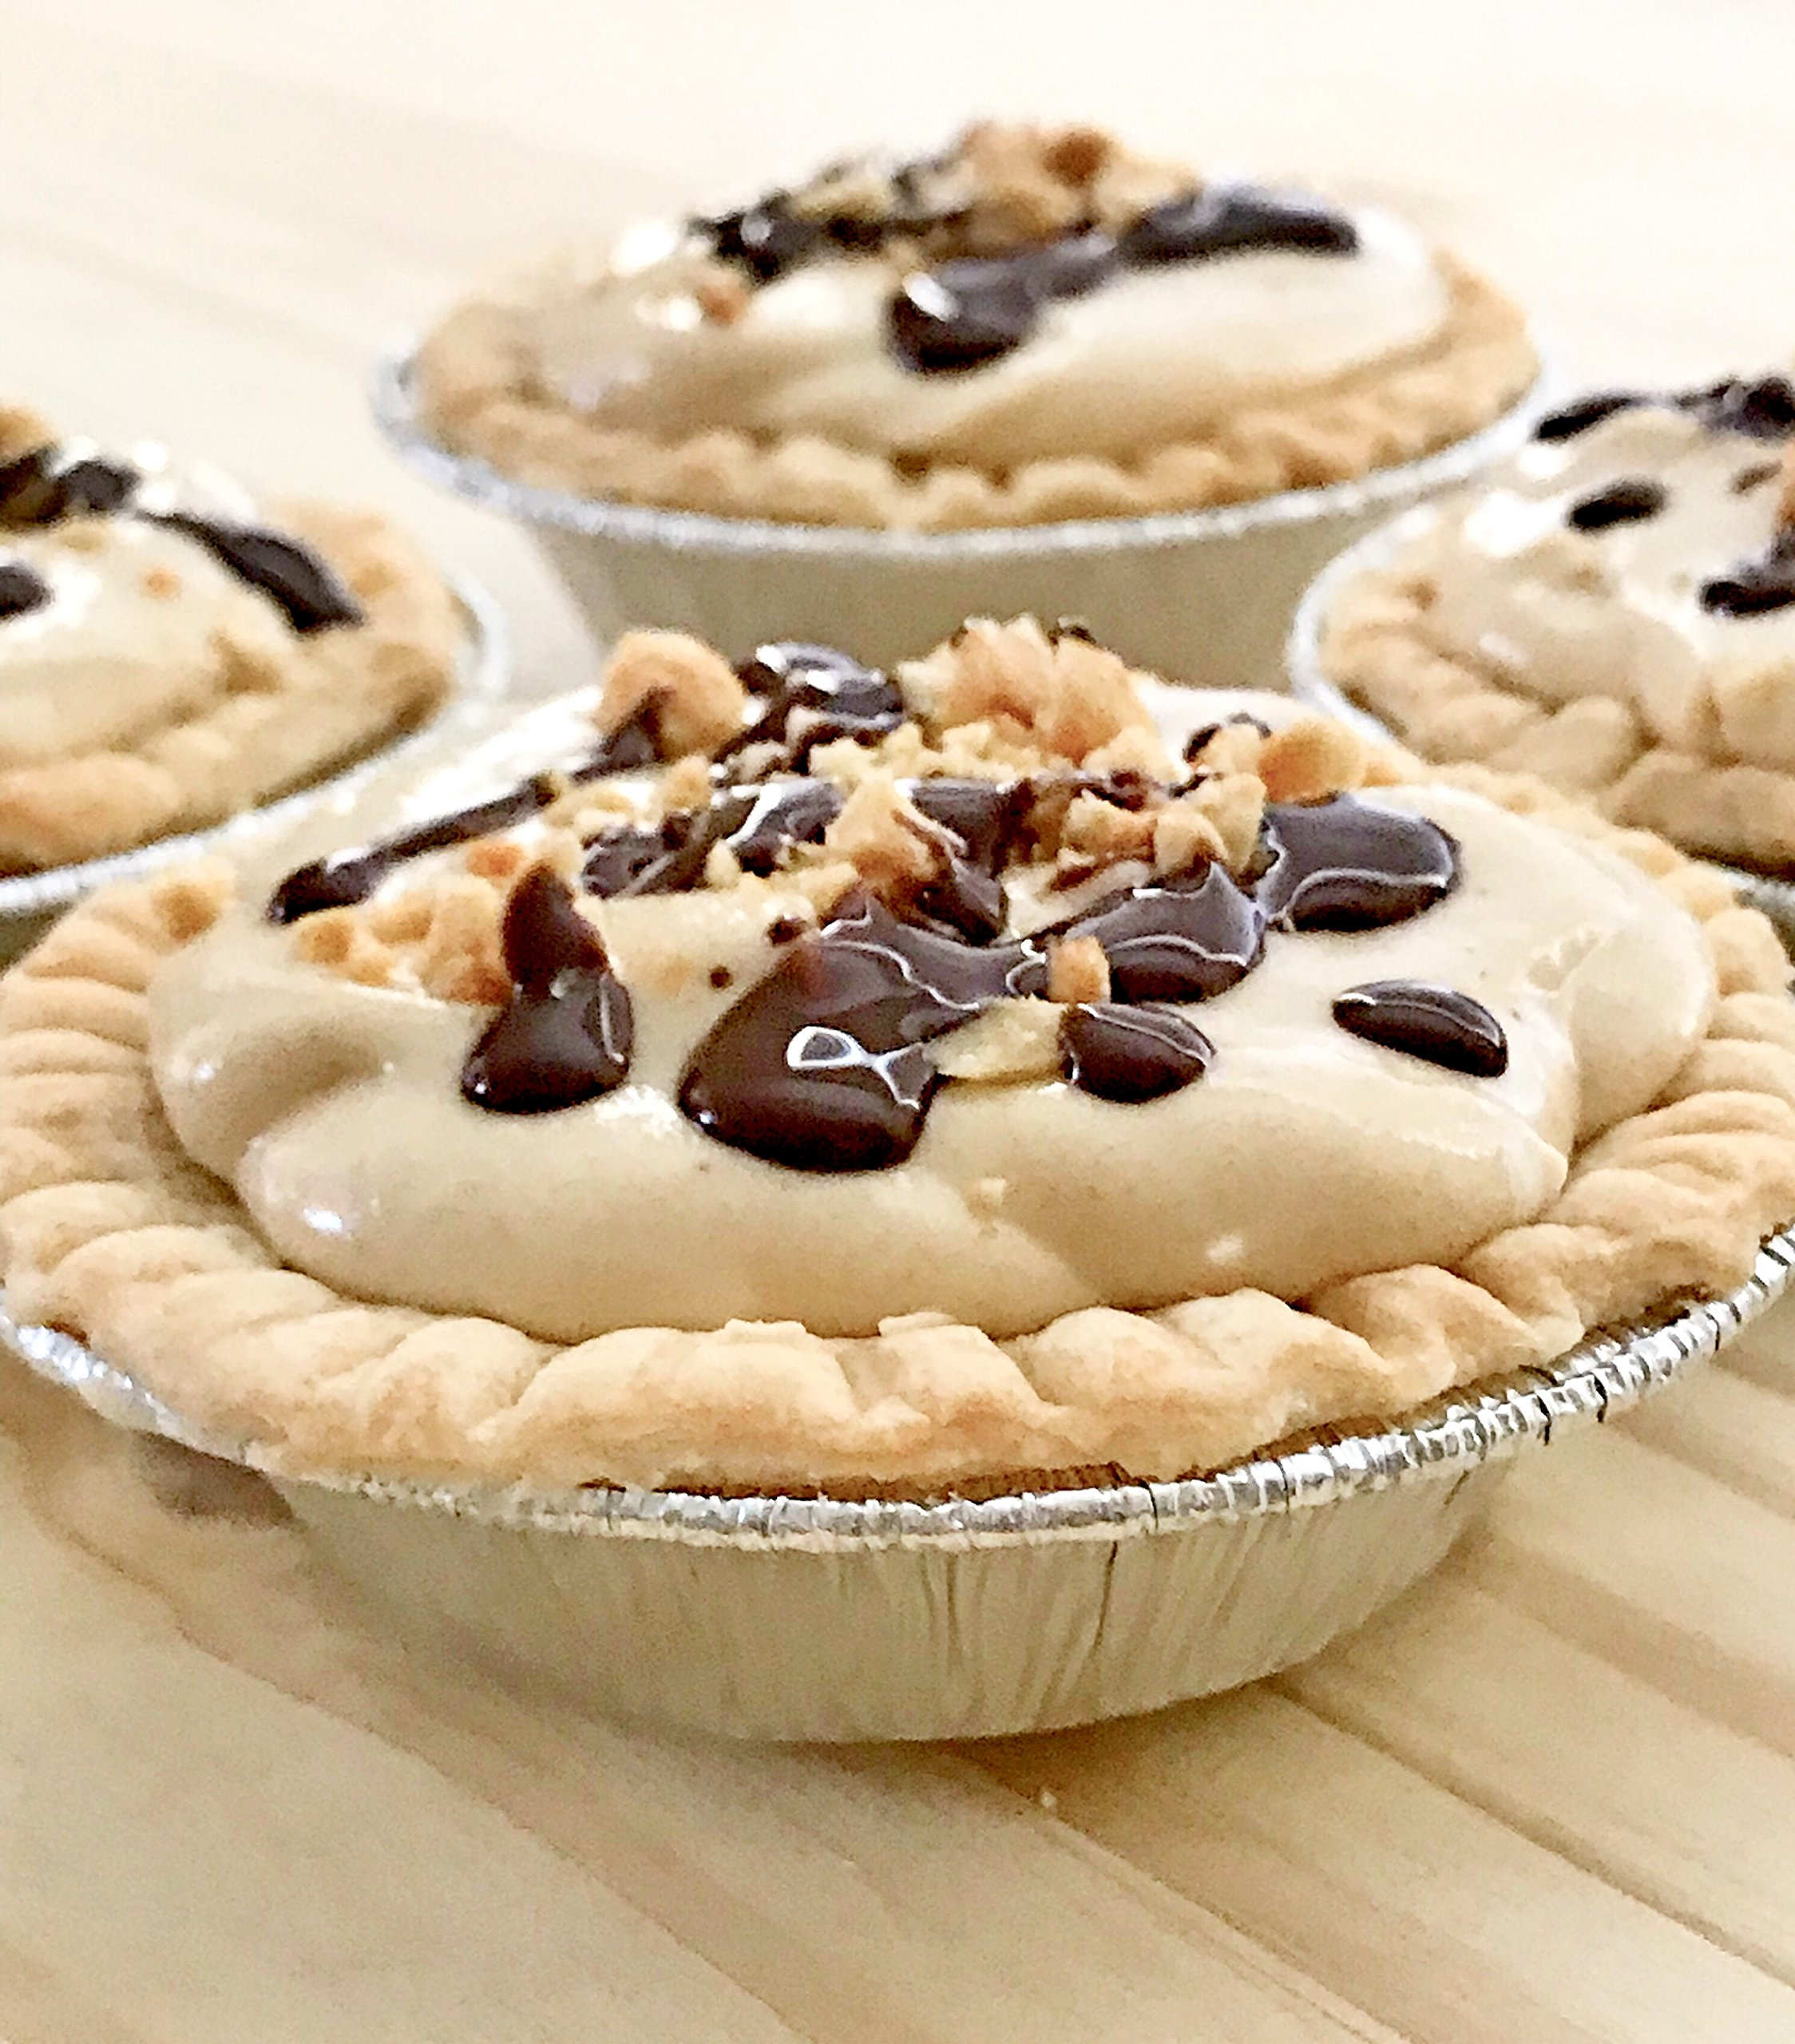 Made in USA - Pack of 200 Mini 3'' Tart Pans - Perfect for individual mini pies - Disposable